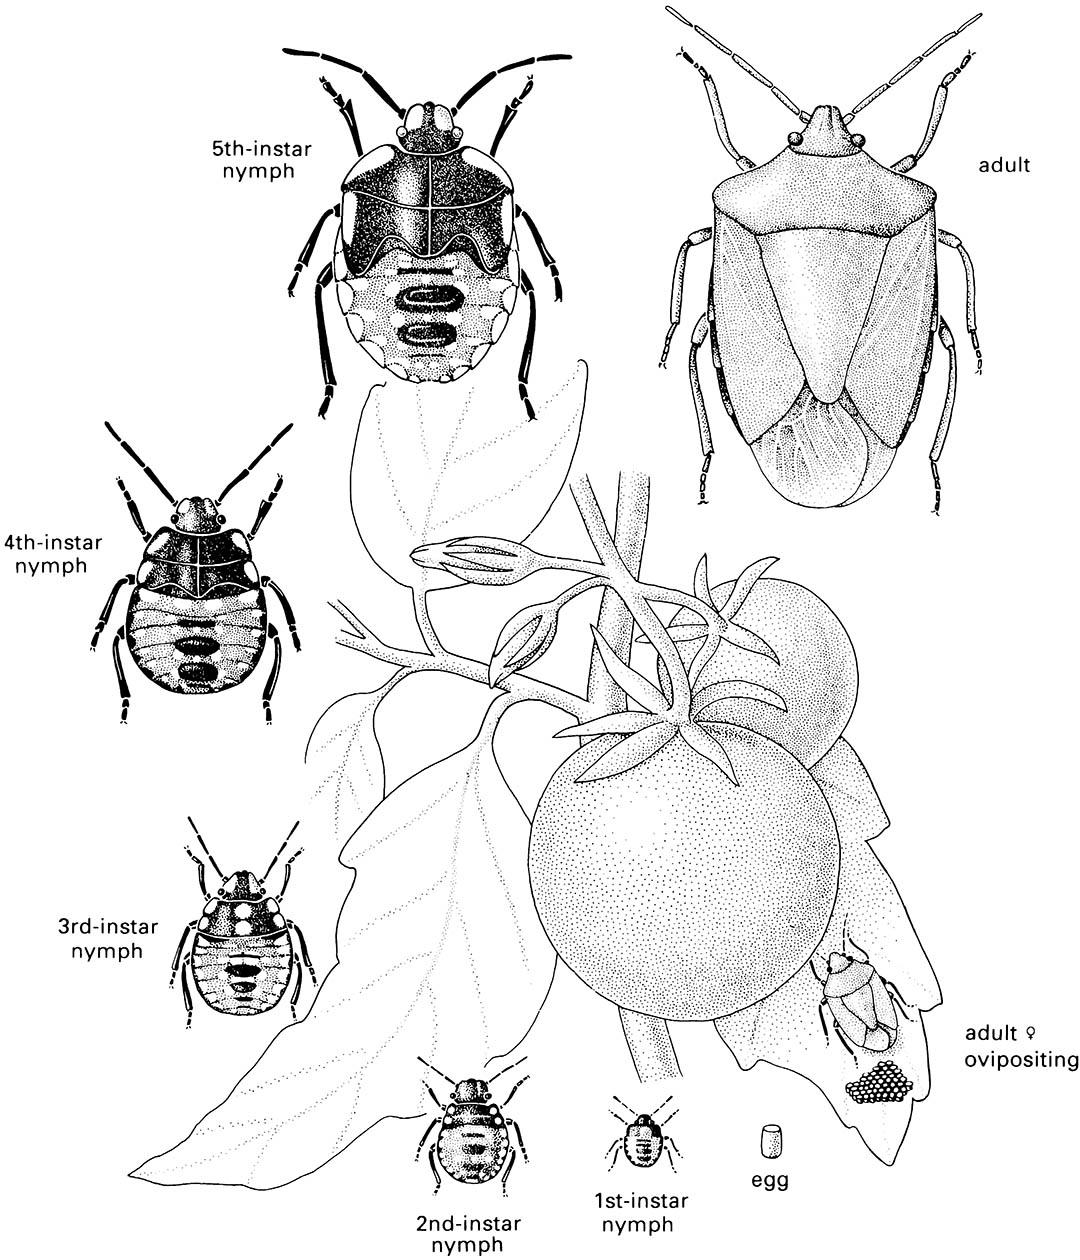 Hemiptera (bugs, cicadas, leafhoppers, spittle bugs, planthoppers ...